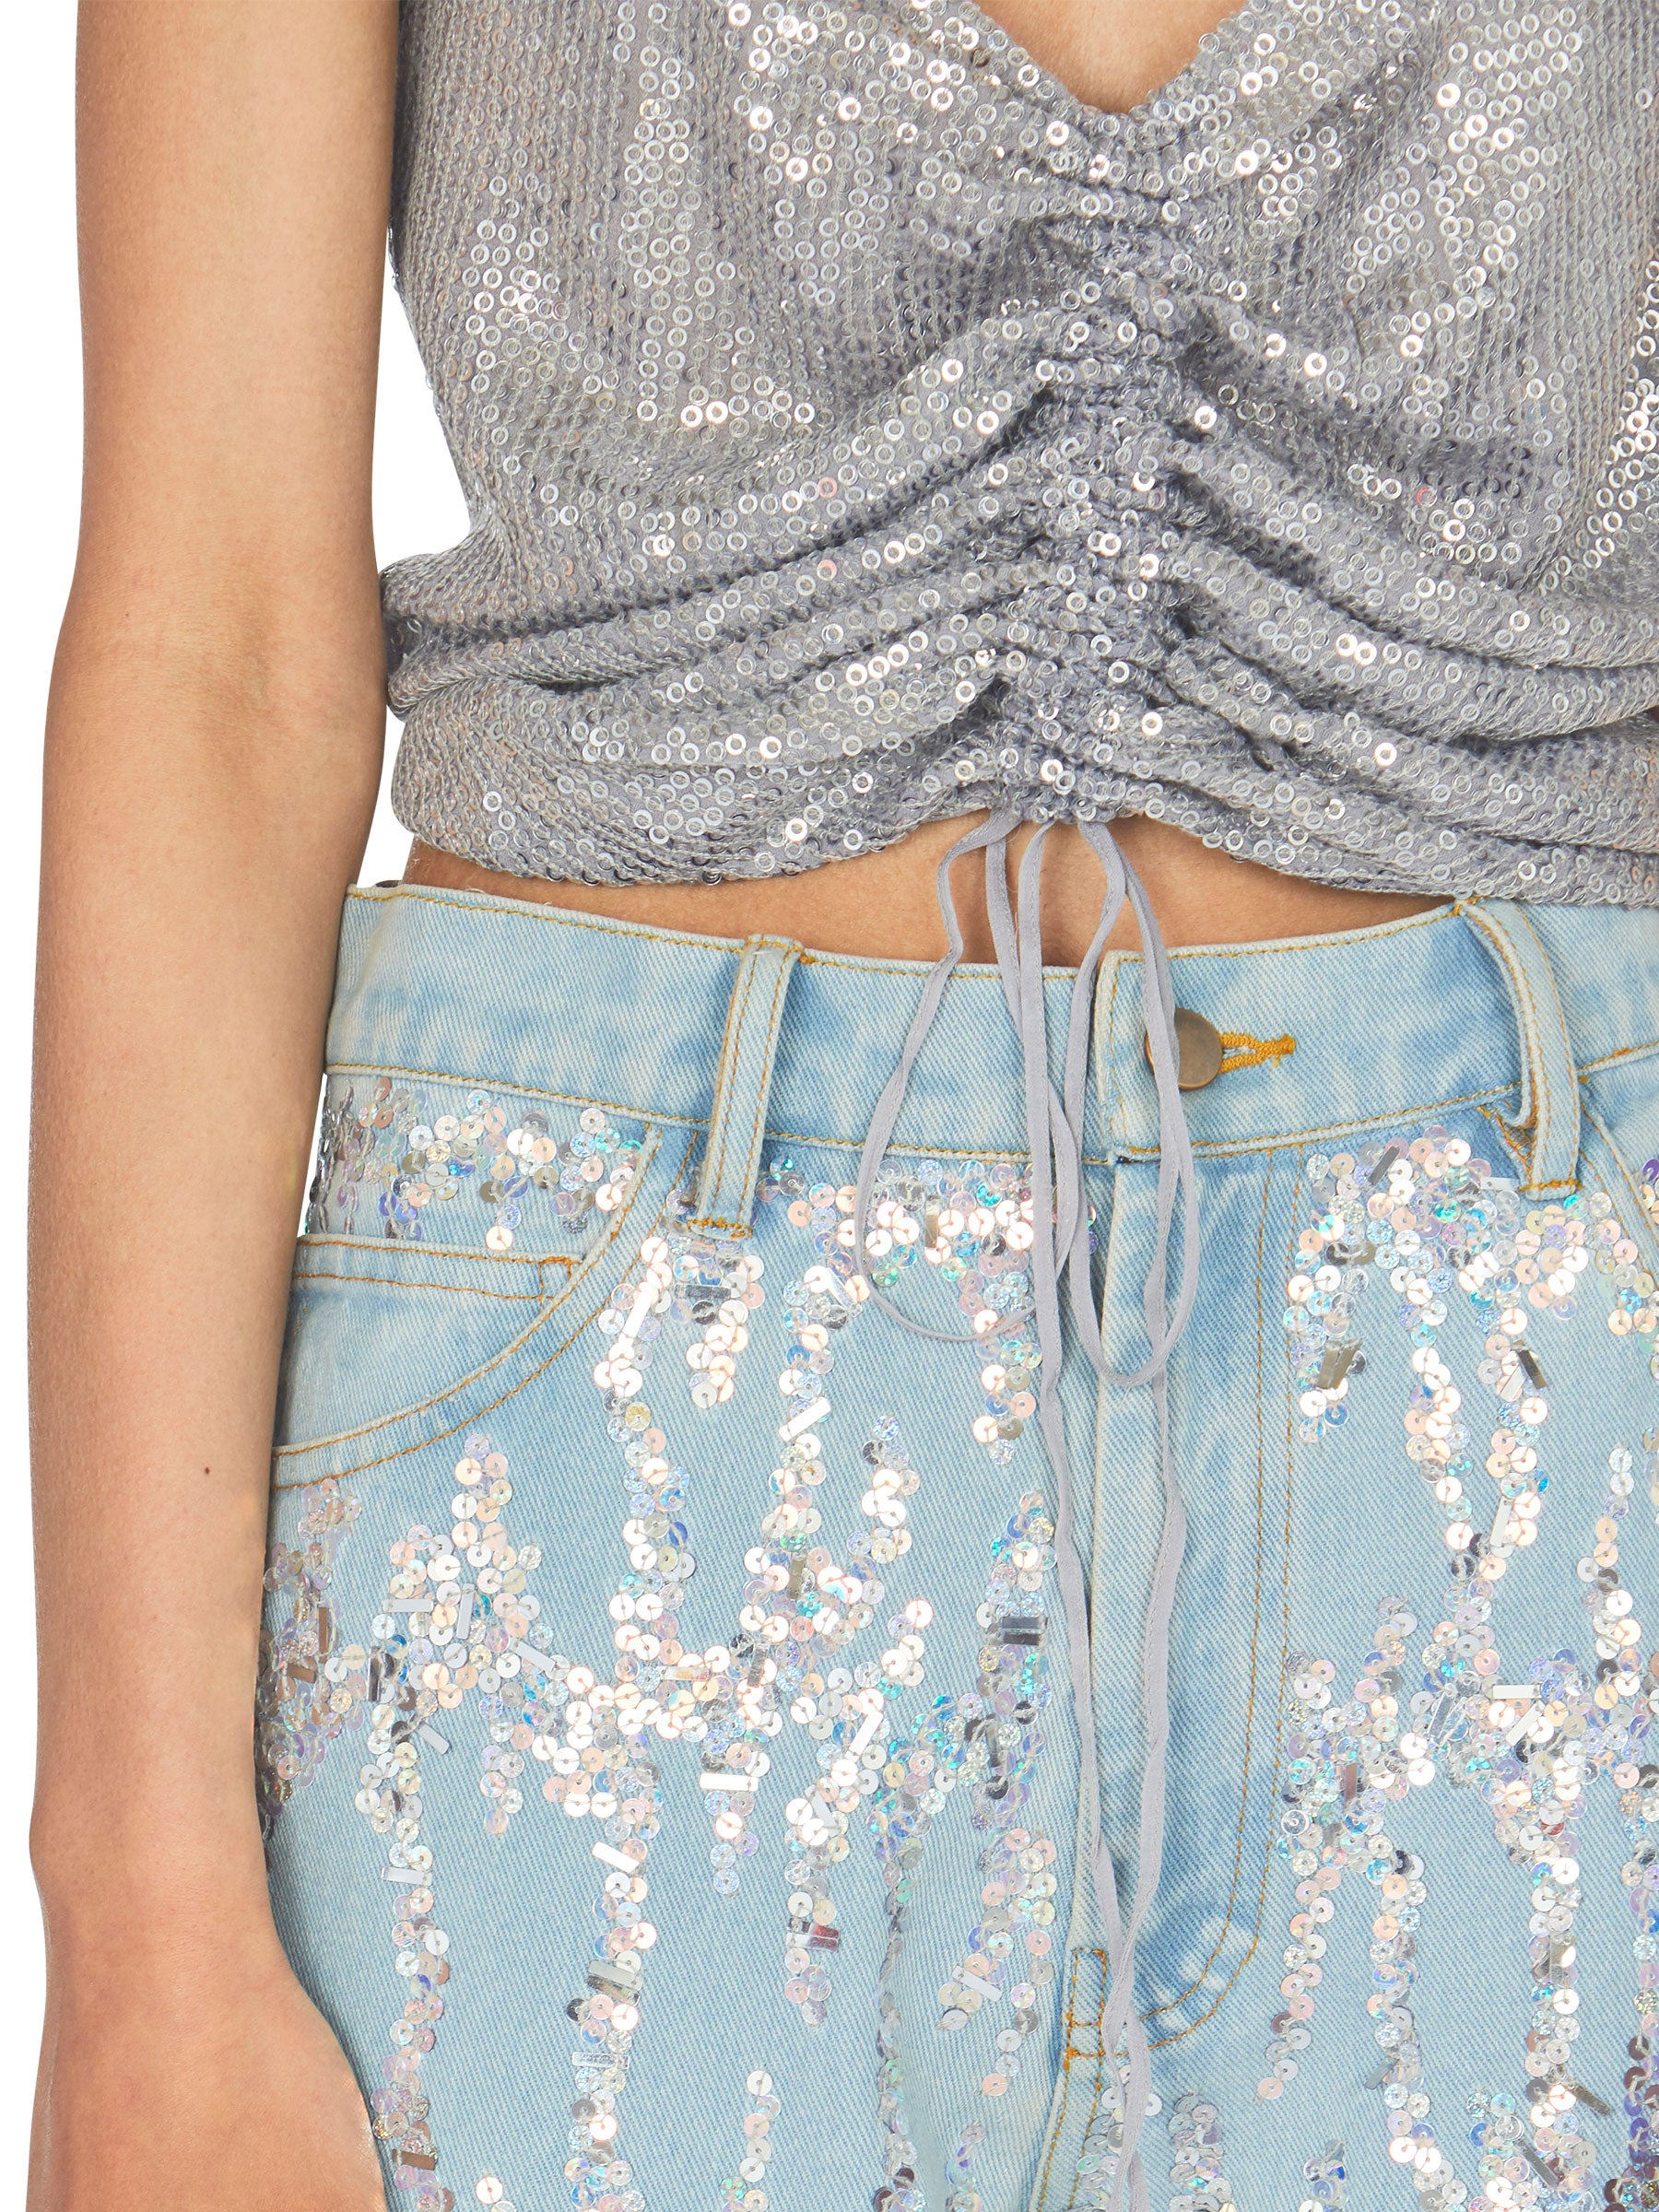 odd92 Ashish Unisex Embroidered Denim Jeans Sequins Spring/Summer 2019 - 5